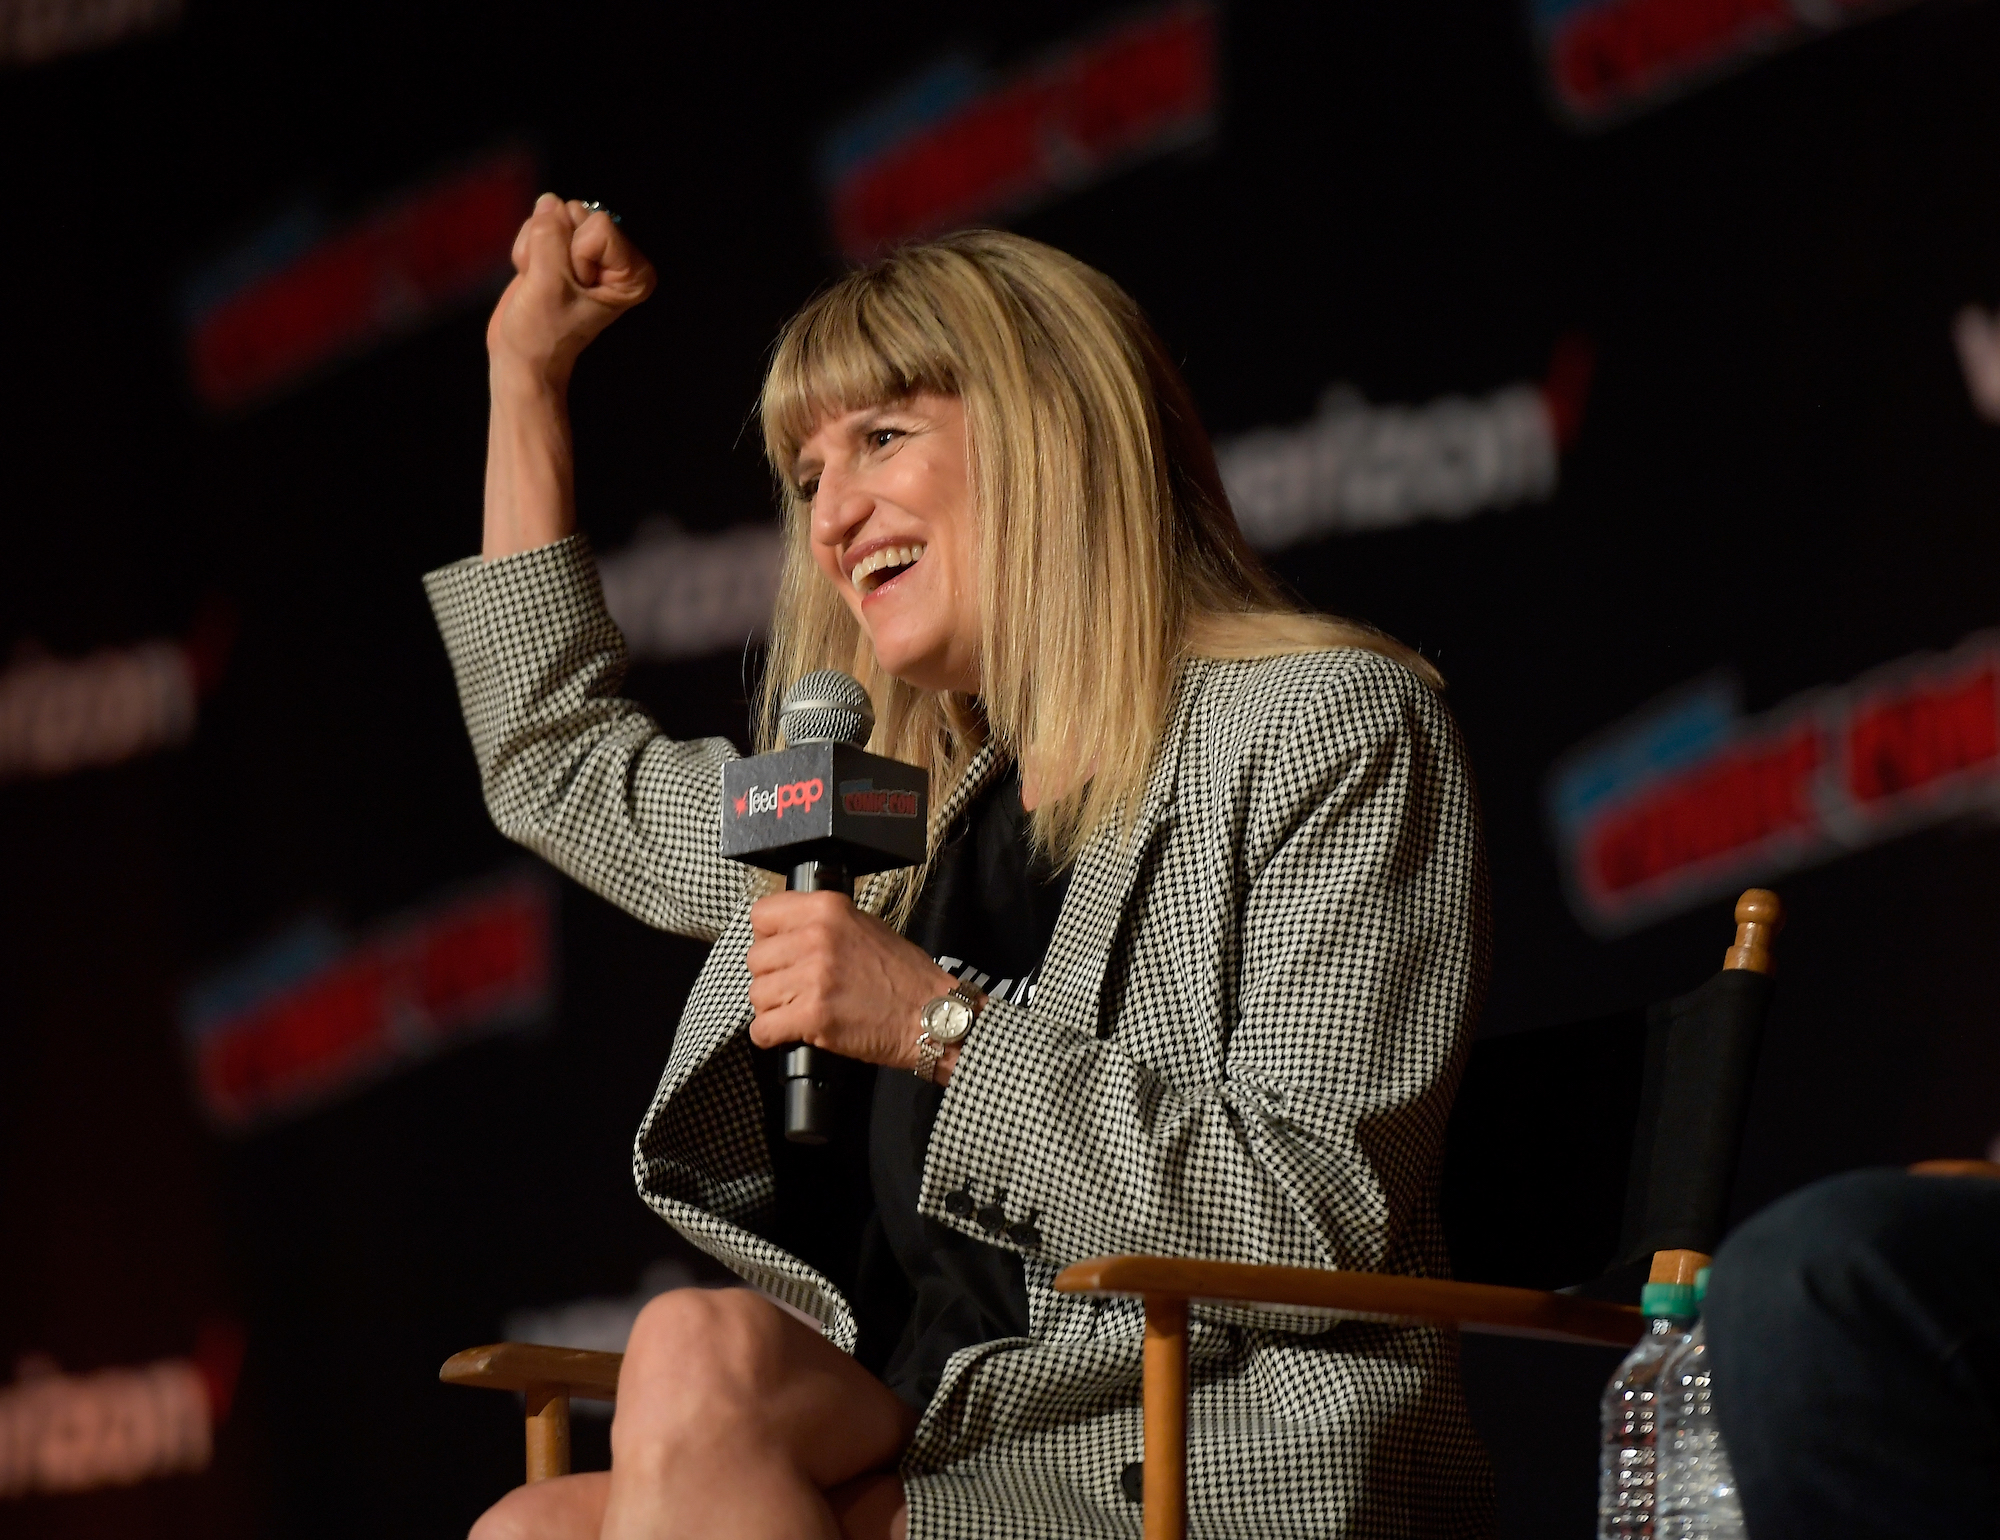 Catherine Hardwicke speaks onstage at the 'Twilight' 10th Anniversary panel during 2018 New York Comic Con on Oct. 7, 2018.